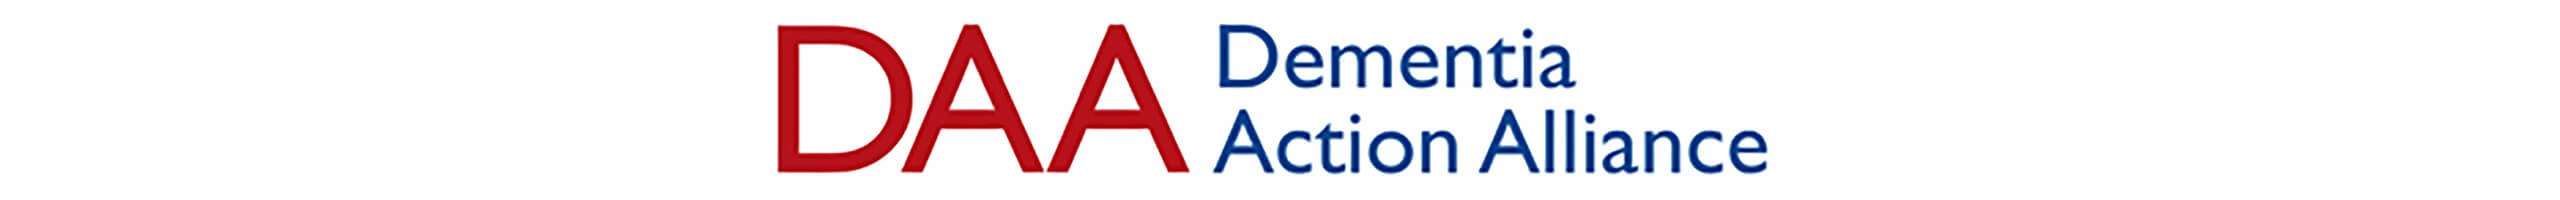 Dementia Action Alliance (DAA) logo